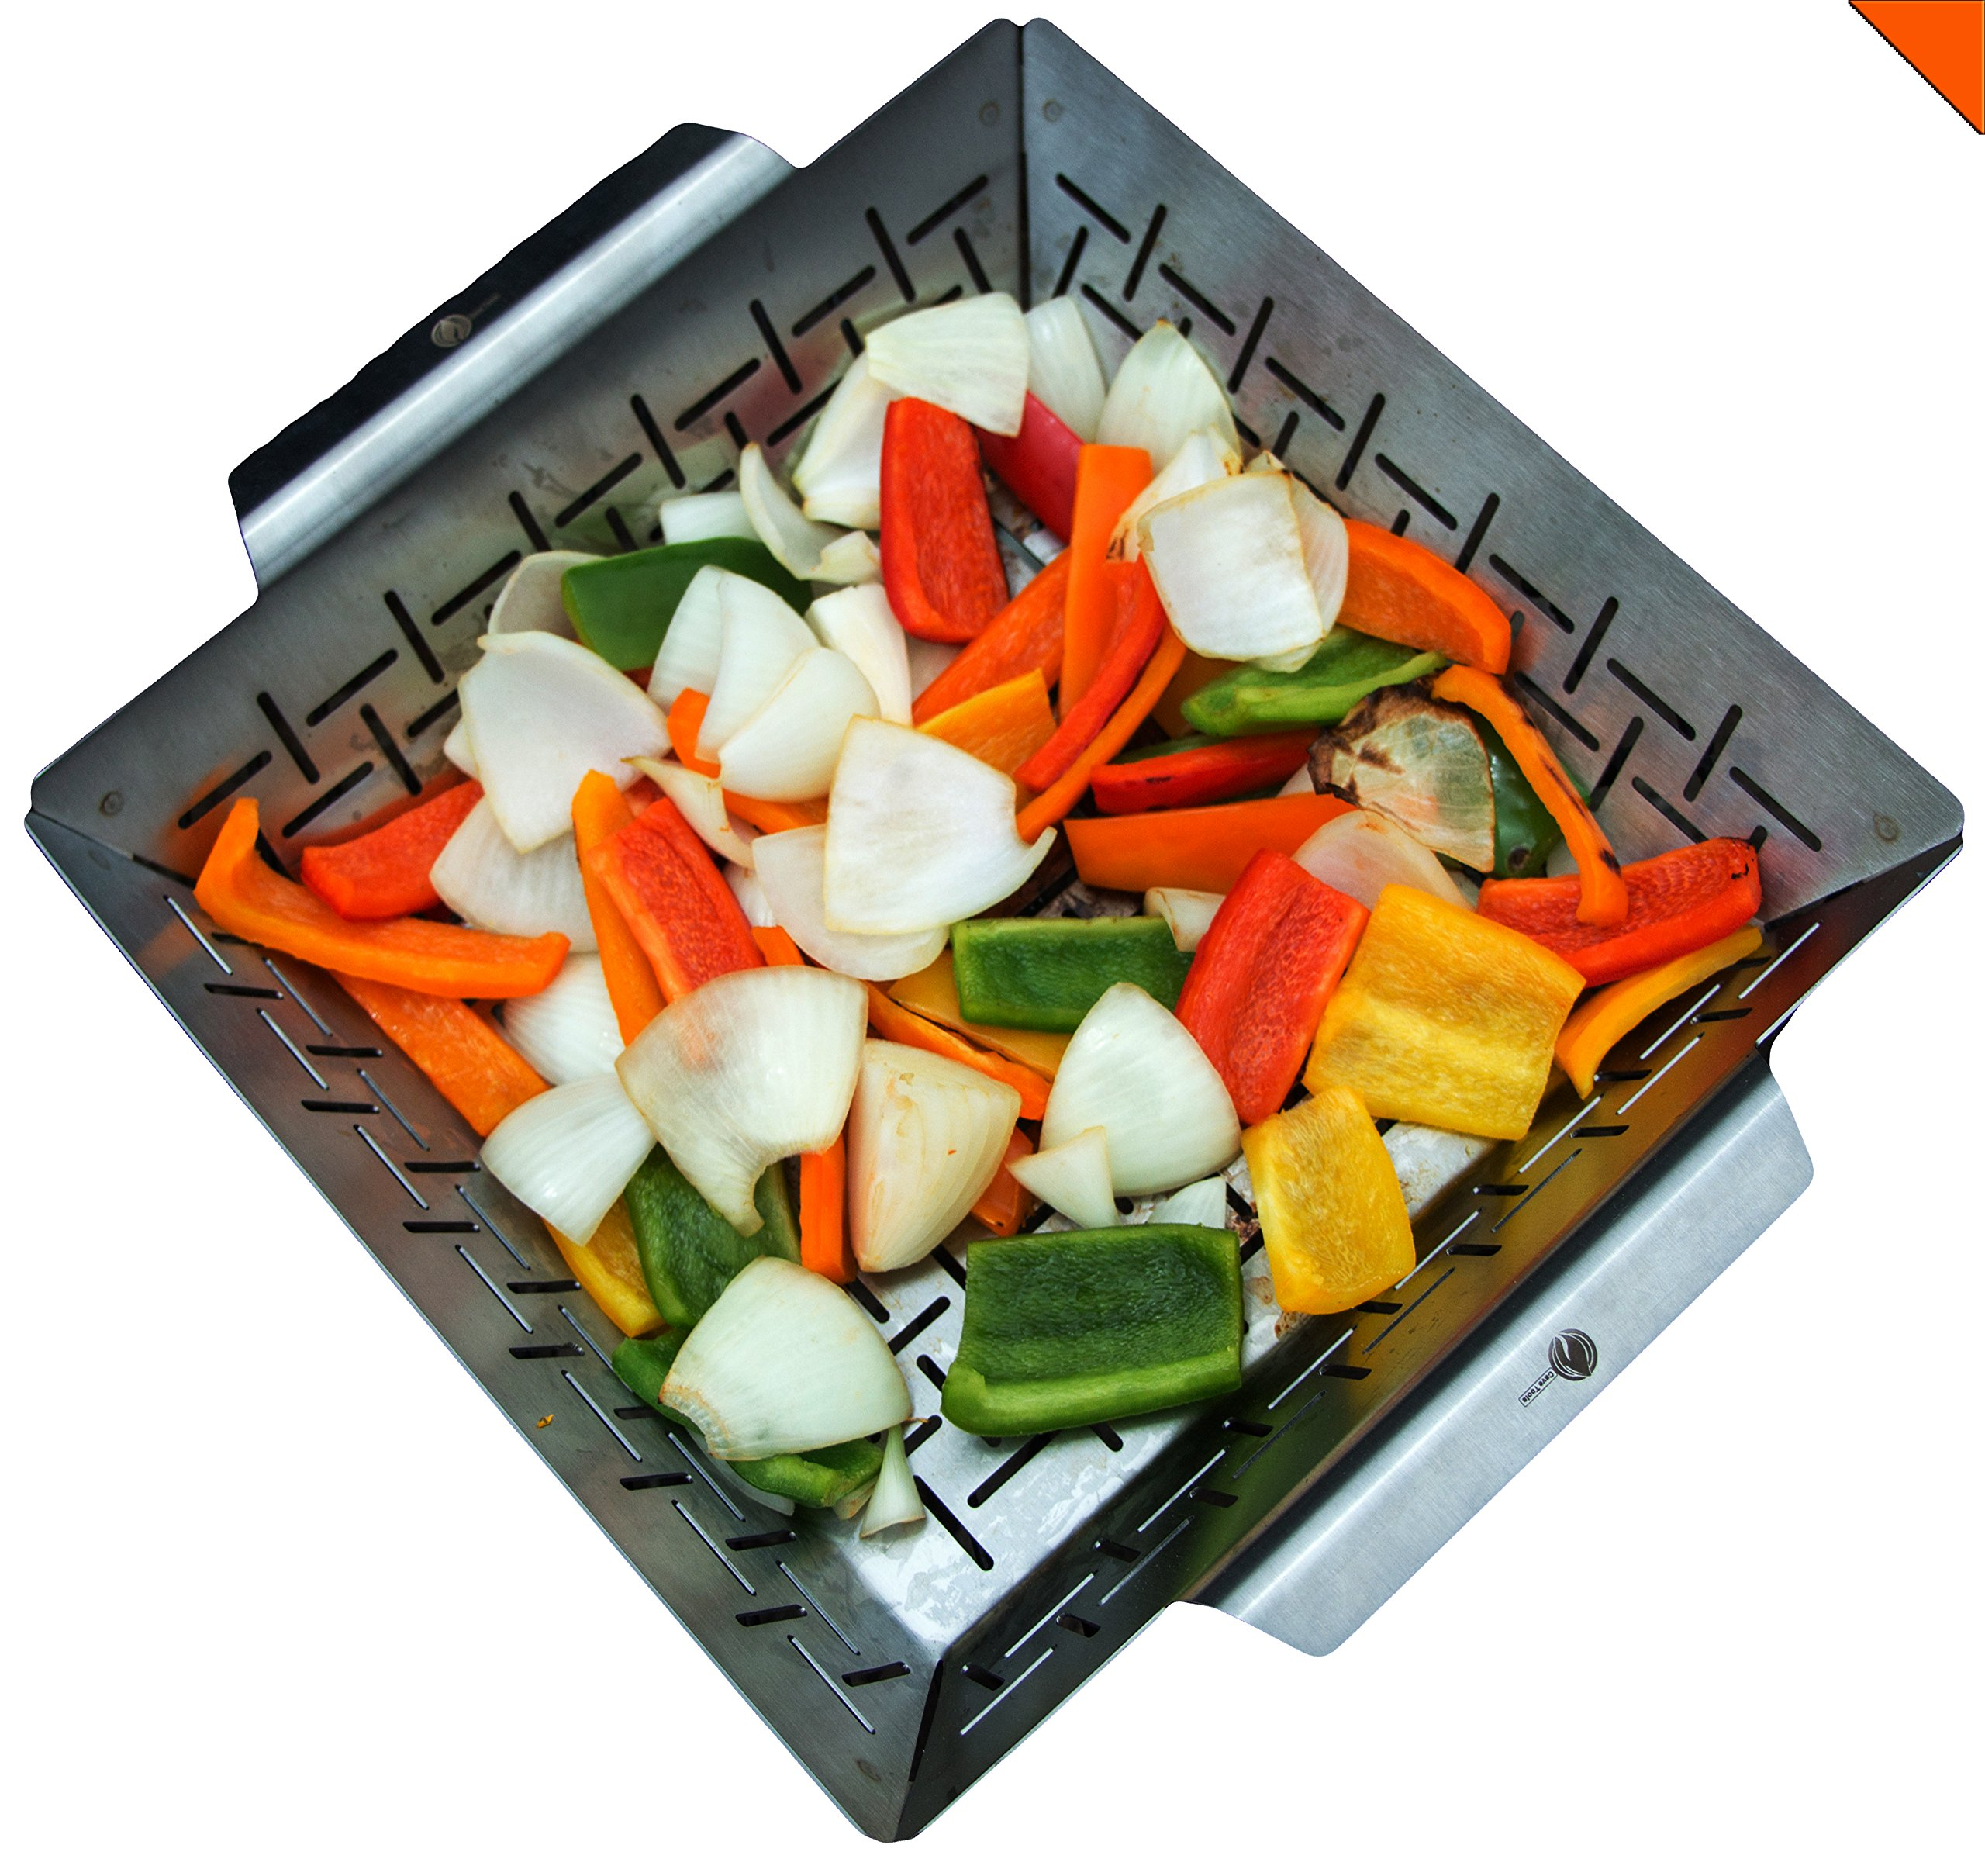 Cave Tools Vegetable Grill Basket - Dishwasher Safe Stainless Steel - Large Non Stick BBQ Grid Pan for Veggies Meat Fish Shrimp & Fruit - Best Barbecue Wok Topper Accessories Gift for Dad by Cave Tools